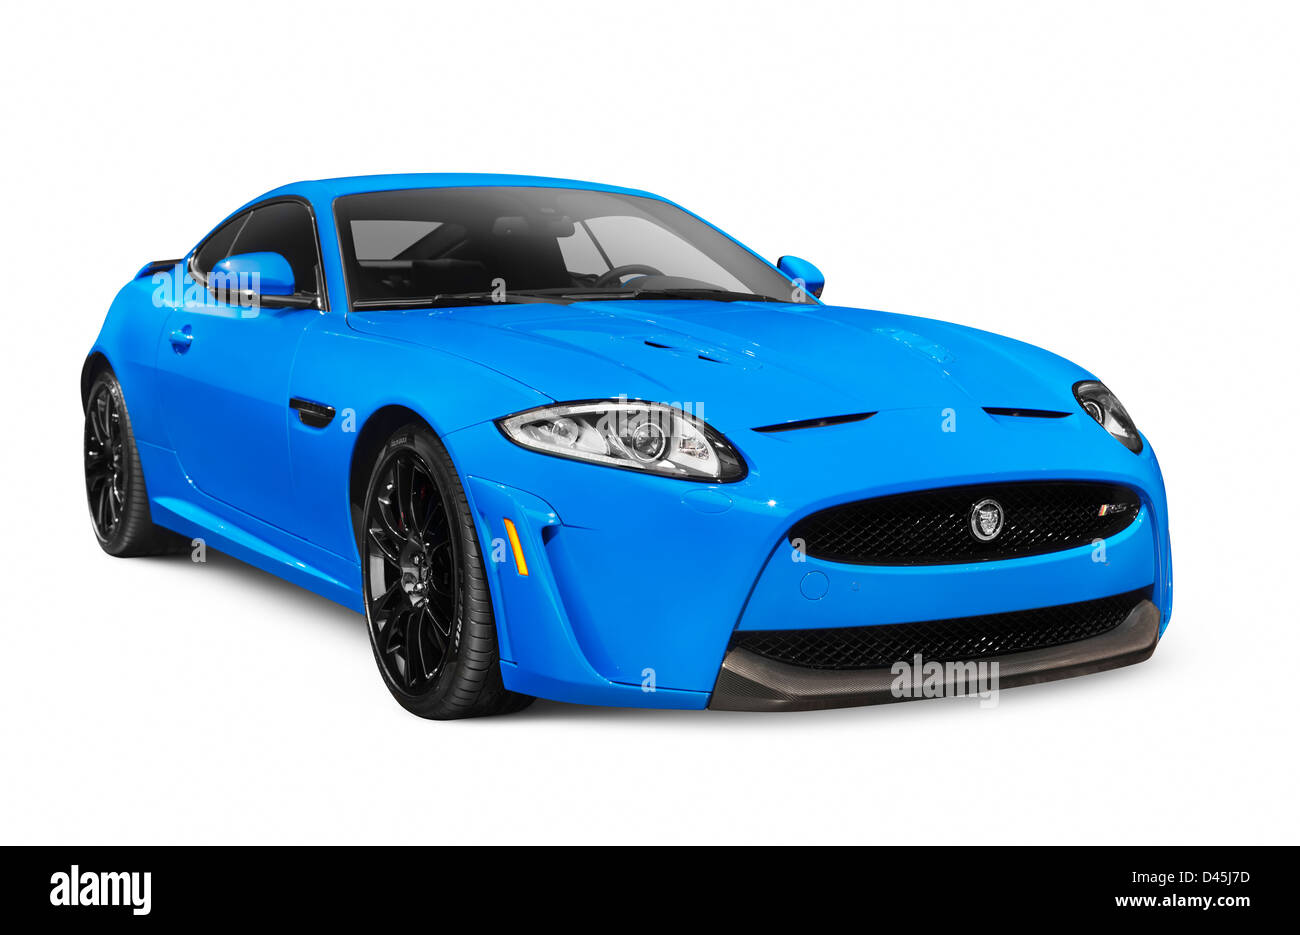 Blue 2013 Jaguar XKR-S luxury car isolated on white background with clipping path - Stock Image